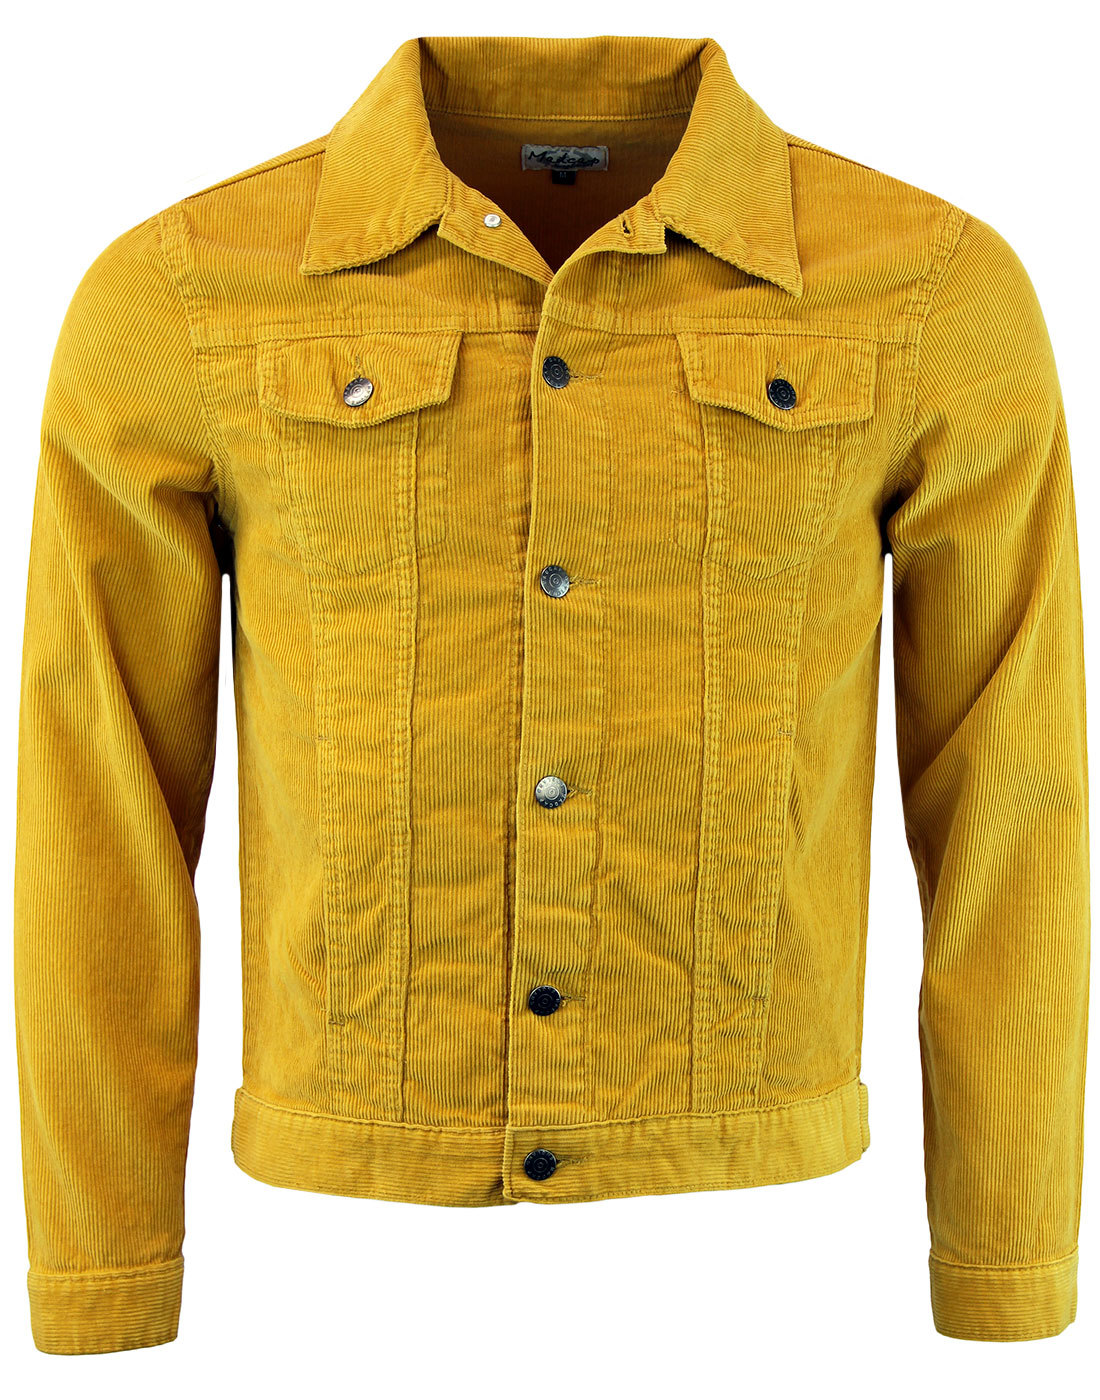 Woburn Retro 1960s Mod Mens Slim Fit Cord Jacket In Gold